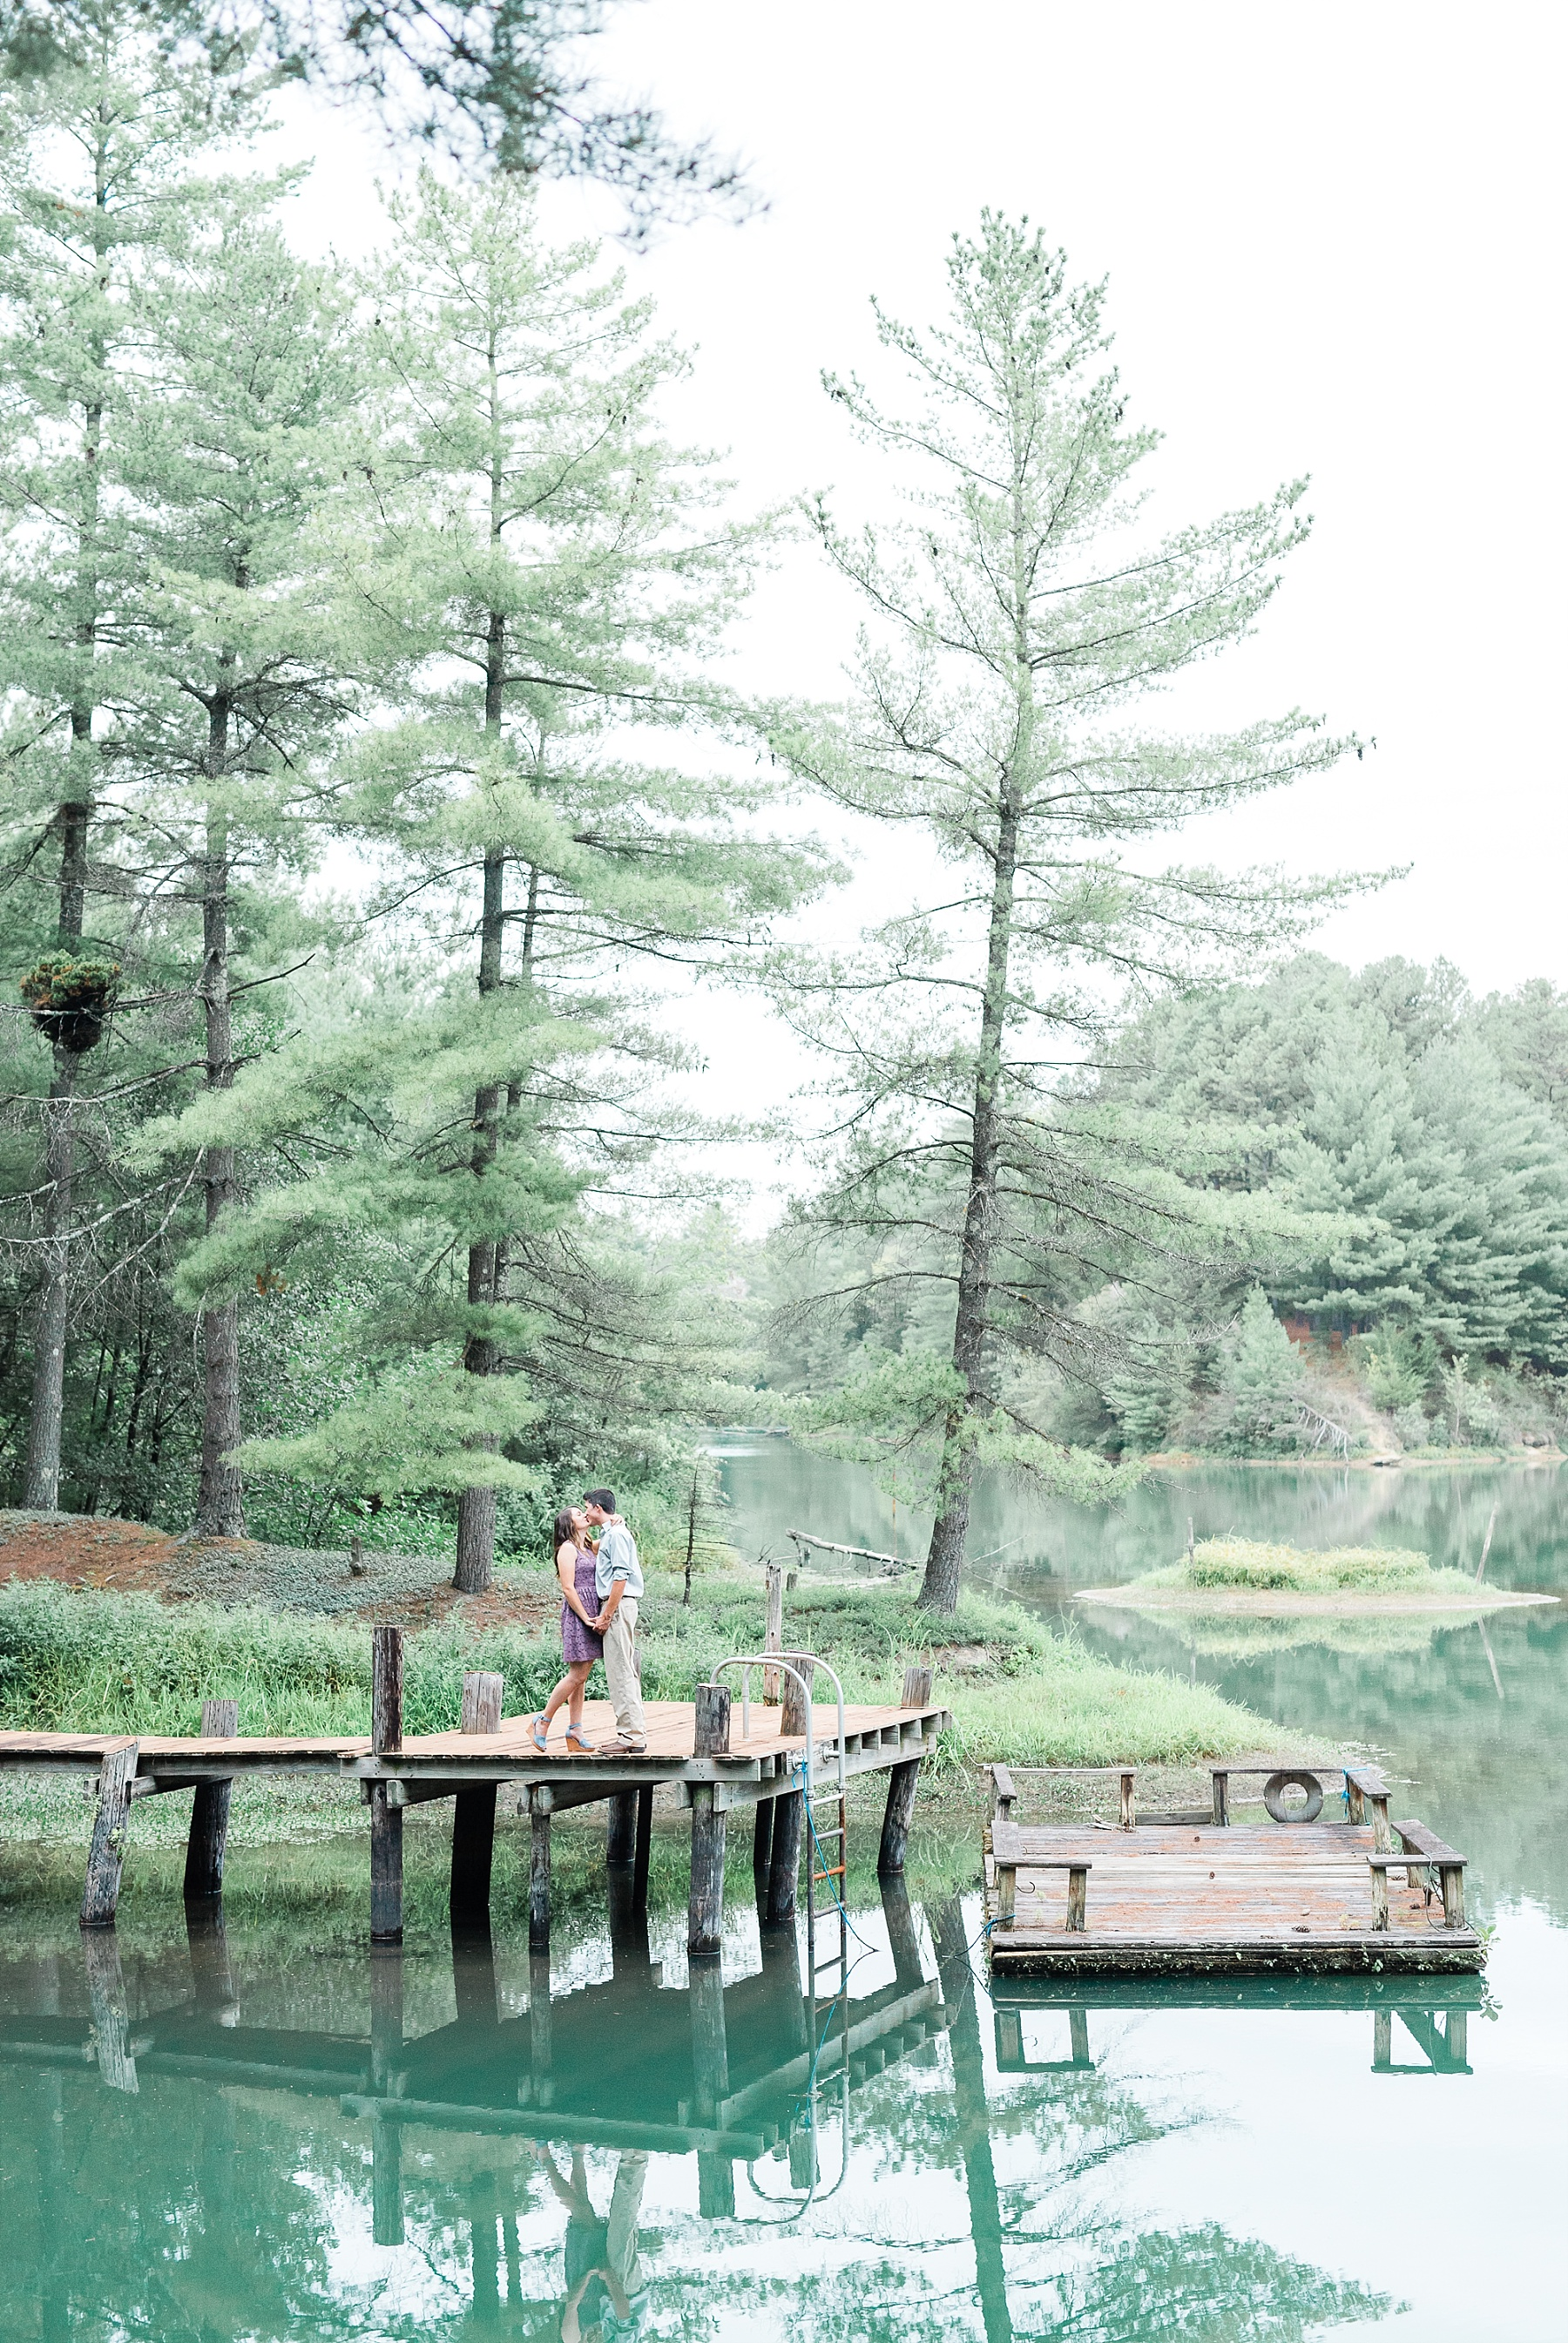 Wanderlust Engagement Session in the Pines with Sunset Canoe Ride in Blue Green Lake in Mid Missouri by Kelsi Kliethermes Photography_0010.jpg